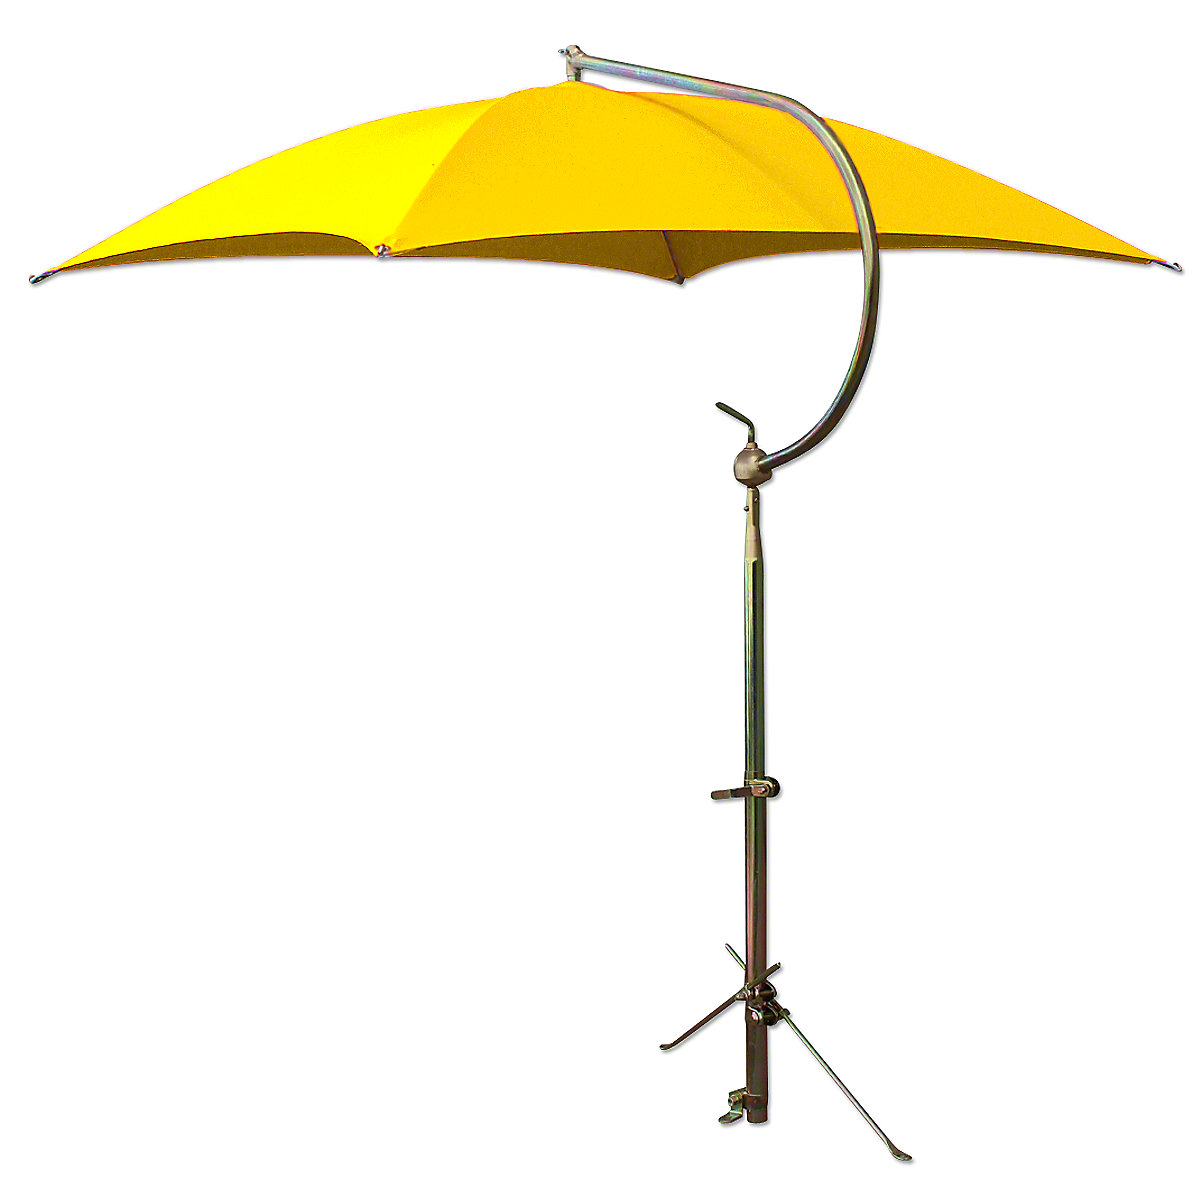 Deluxe Yellow Umbrella With Brackets For Massey Harris And Massey Ferguson Tractors.